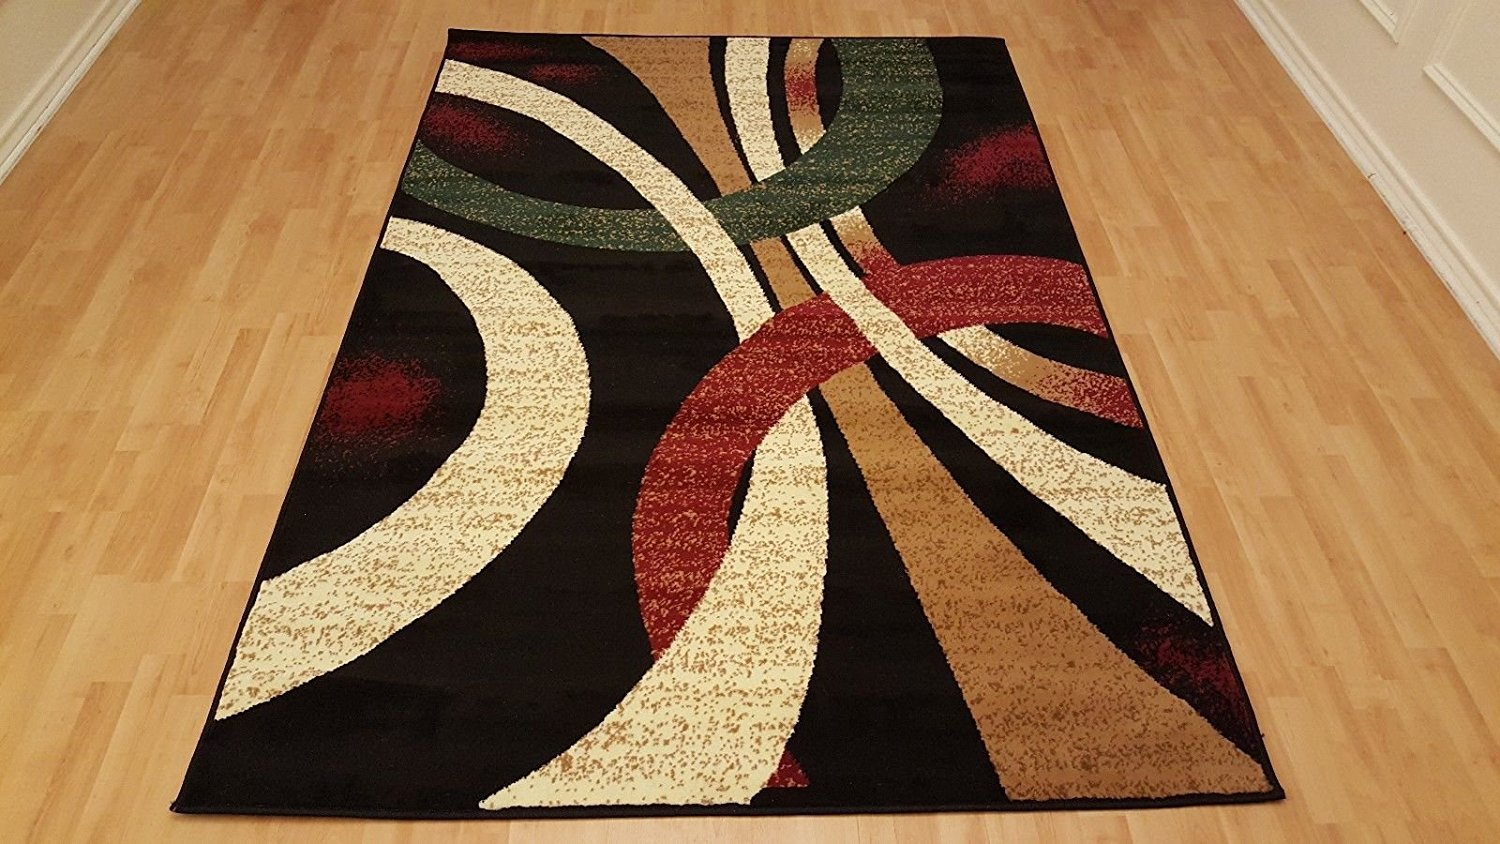 Buy Rugs Area Circle Design Contemporary Style Area Rugs 5x7 Black Color Carpets From Dynastyfloorrugs In Cheap Price On Alibaba Com